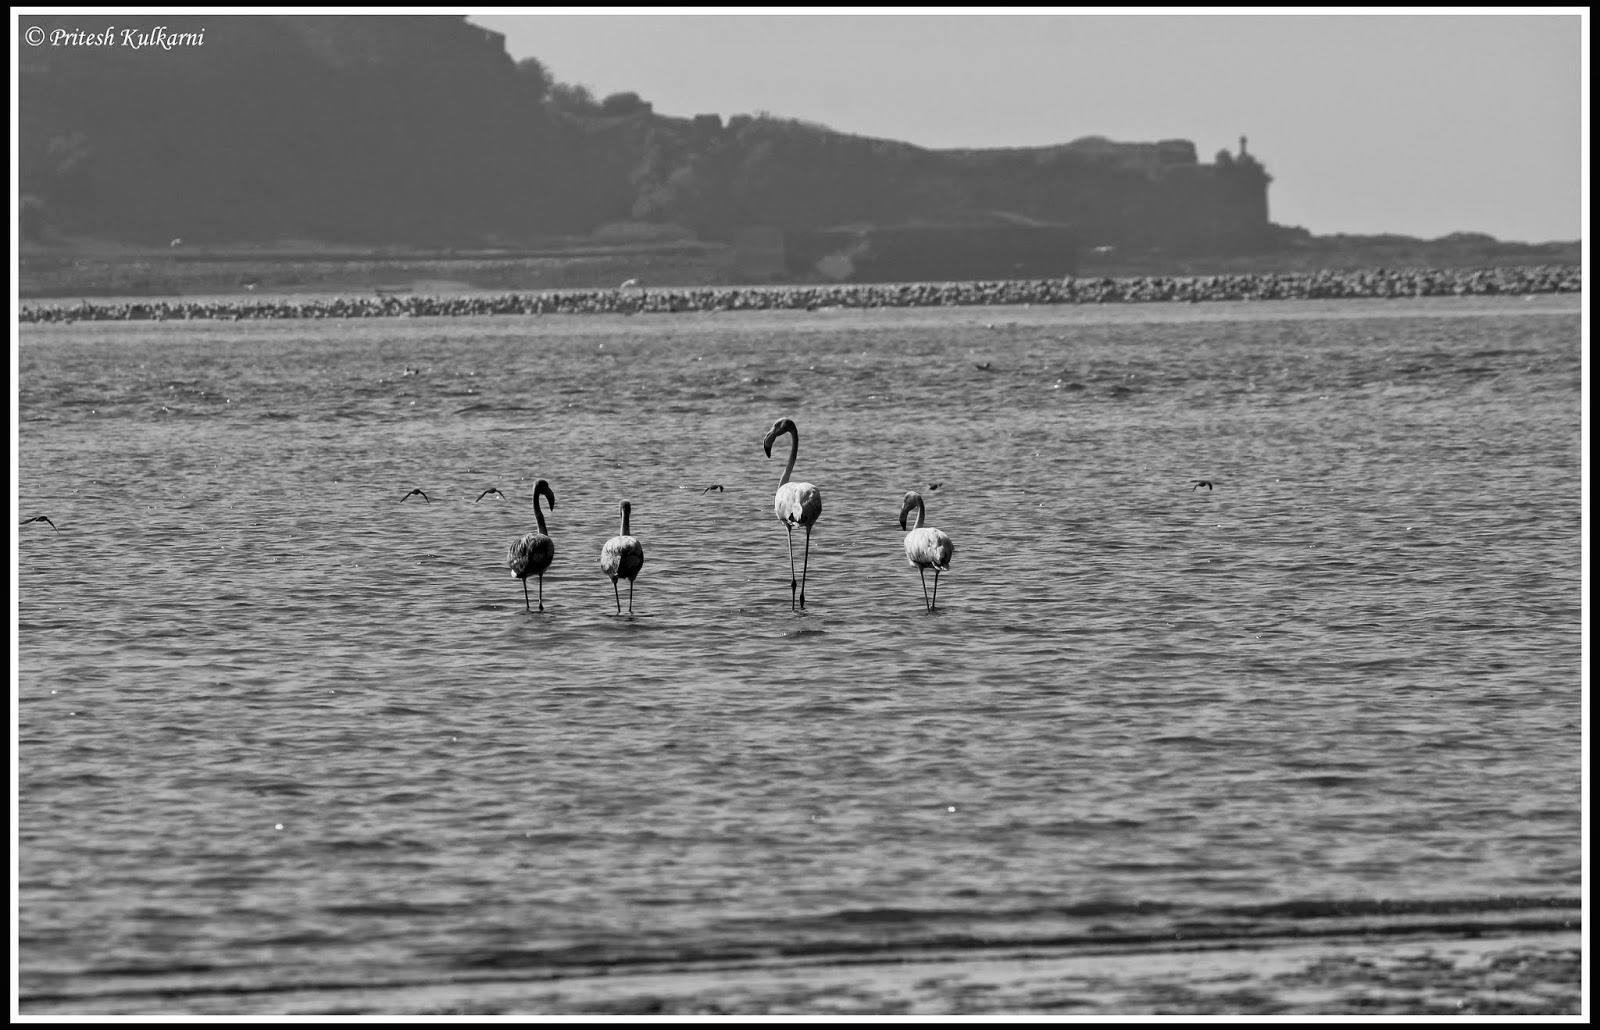 Greater Flamingo at Revdanda